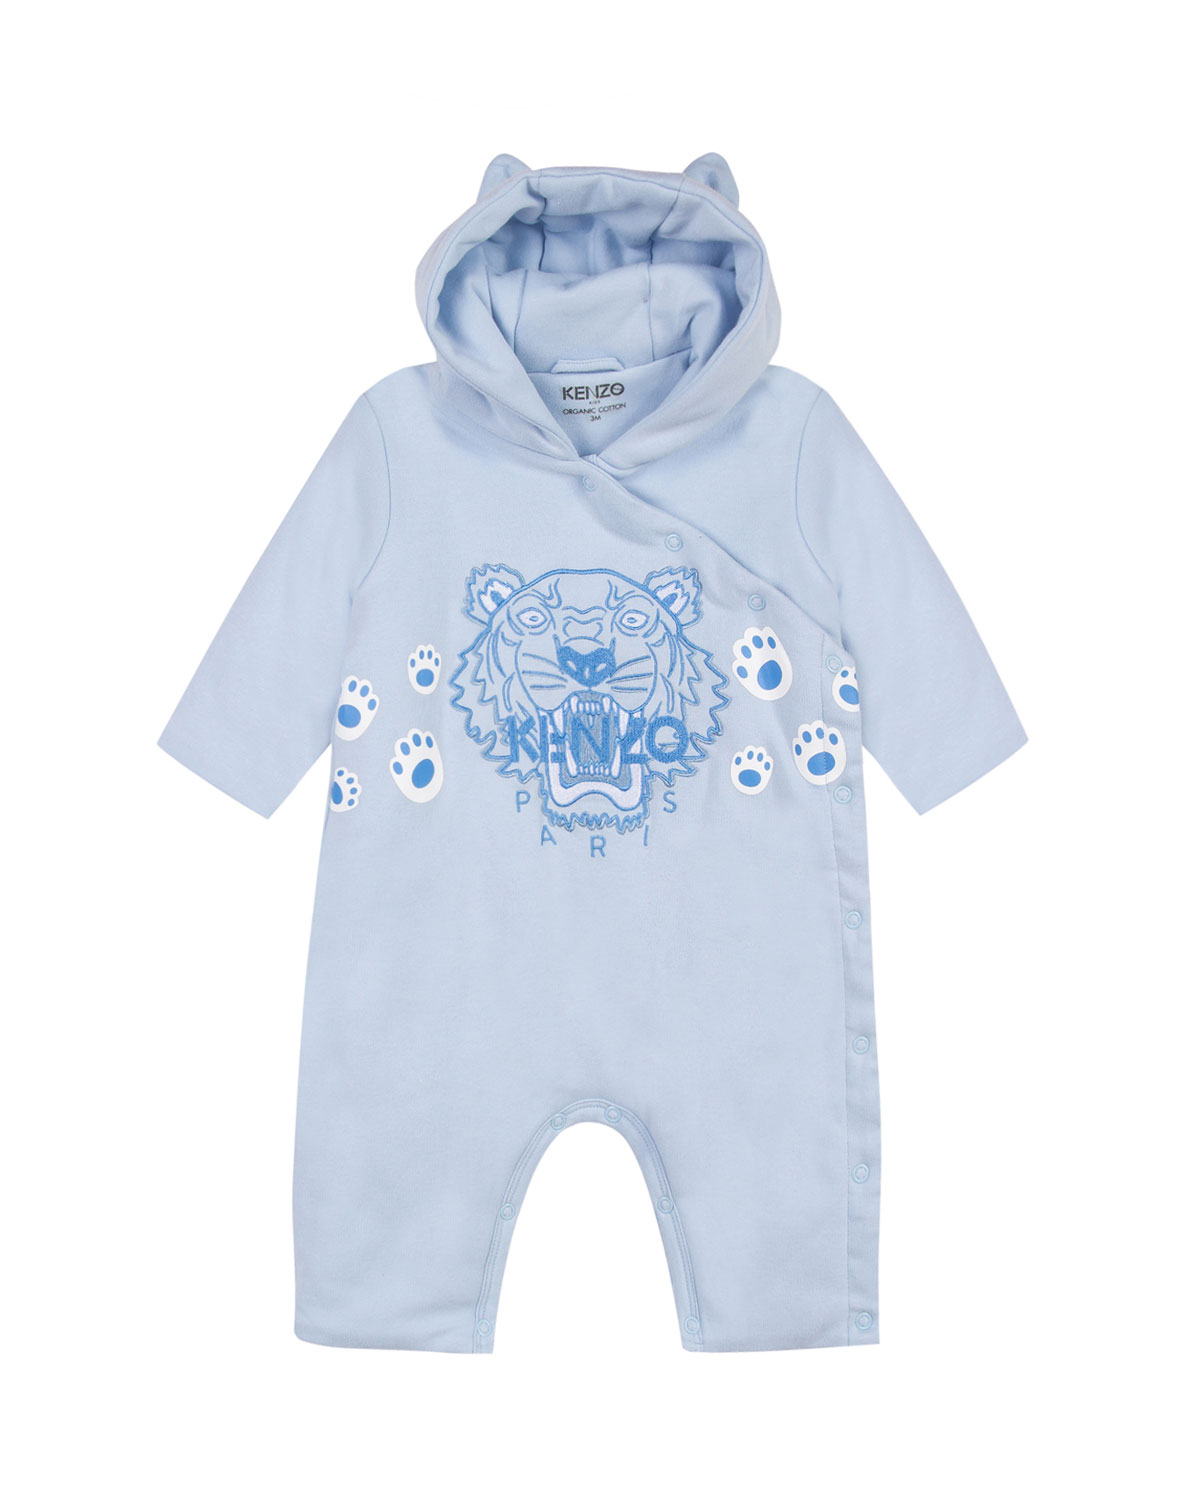 e4c2d529 Hooded Fleece Coverall w/ Tiger Icon Embroidery, Size 6-18 Months